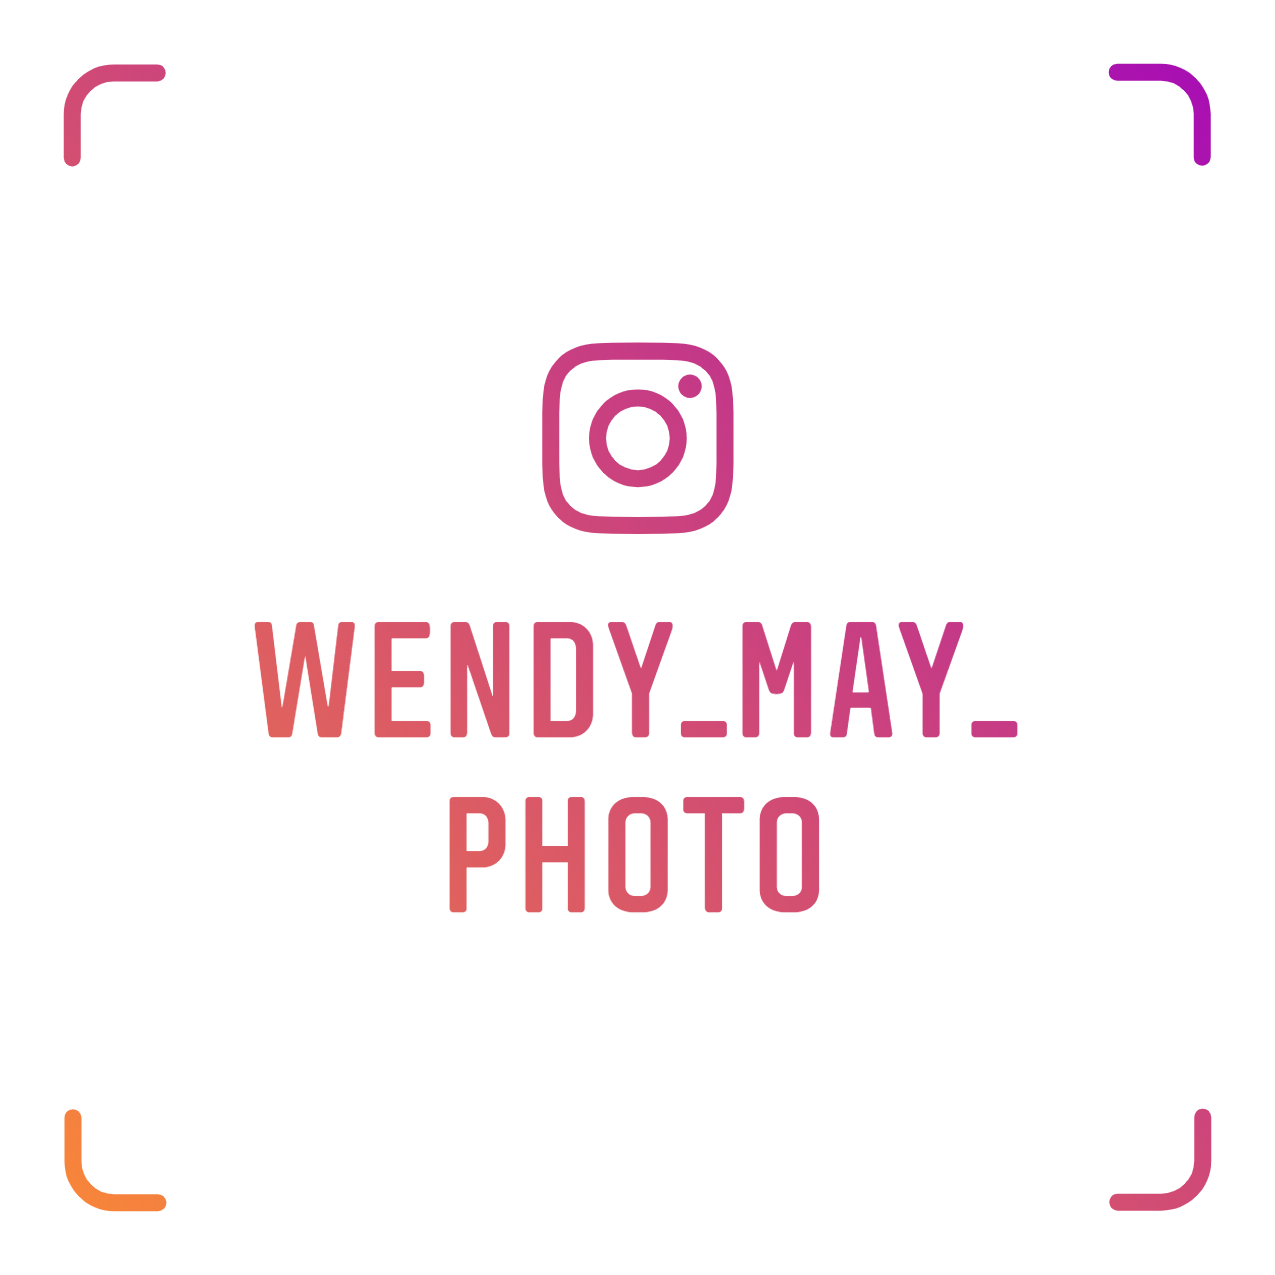 @wendy_may_photo